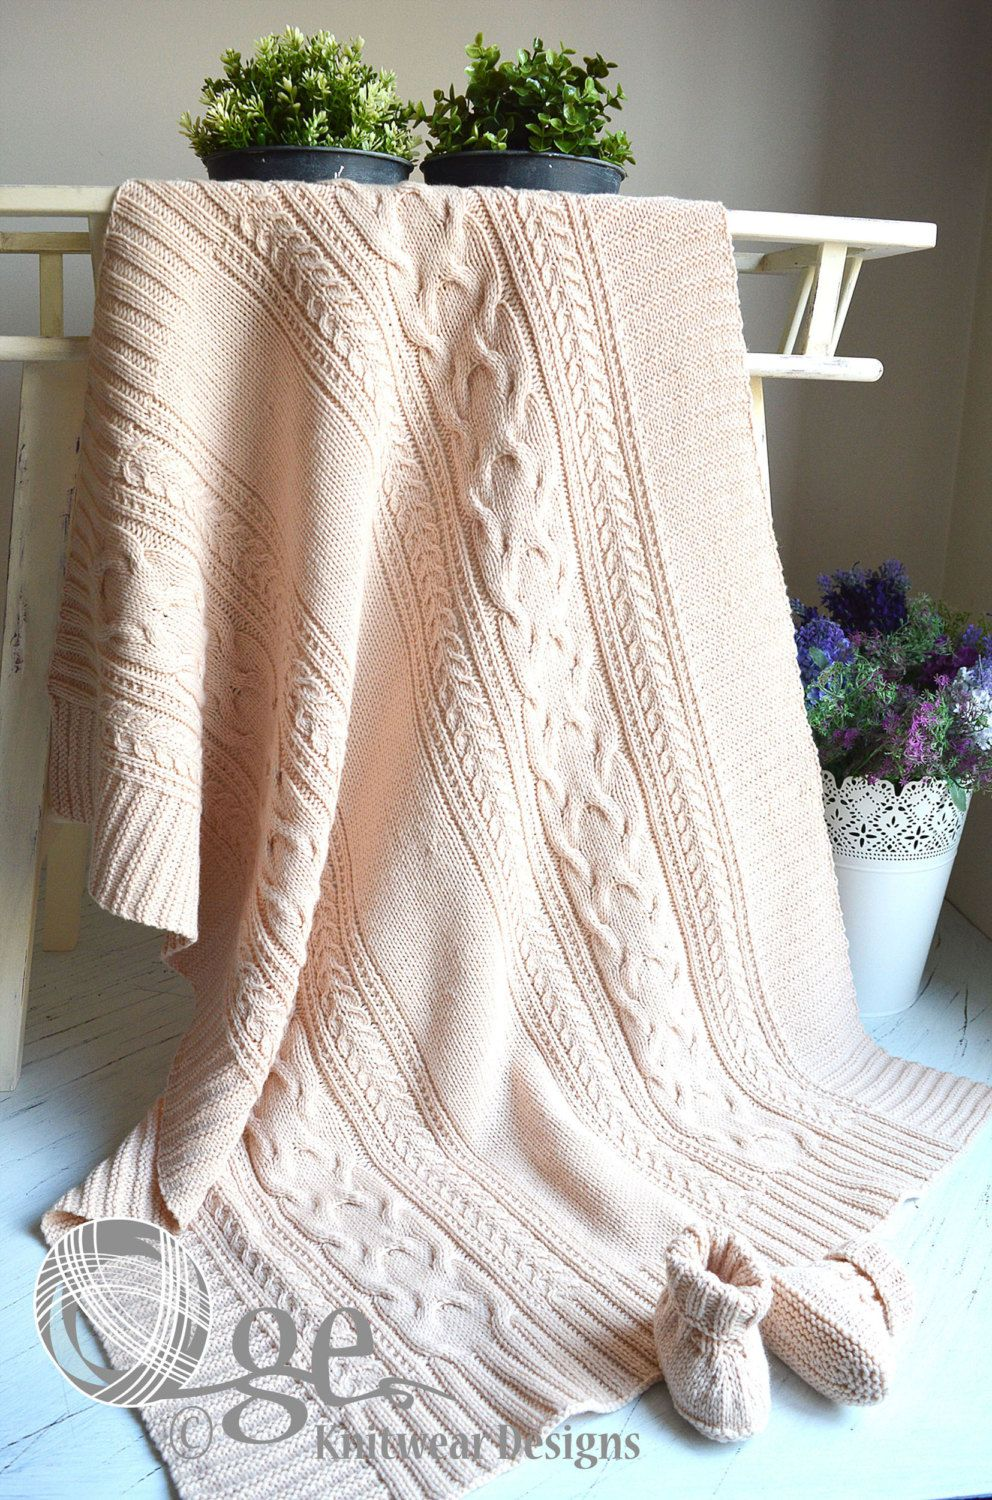 Knitting pattern for cable treasure baby blanket or throw p100 knitting pattern for cable treasure baby blanket or throw p100 simple elegant cable bankloansurffo Choice Image